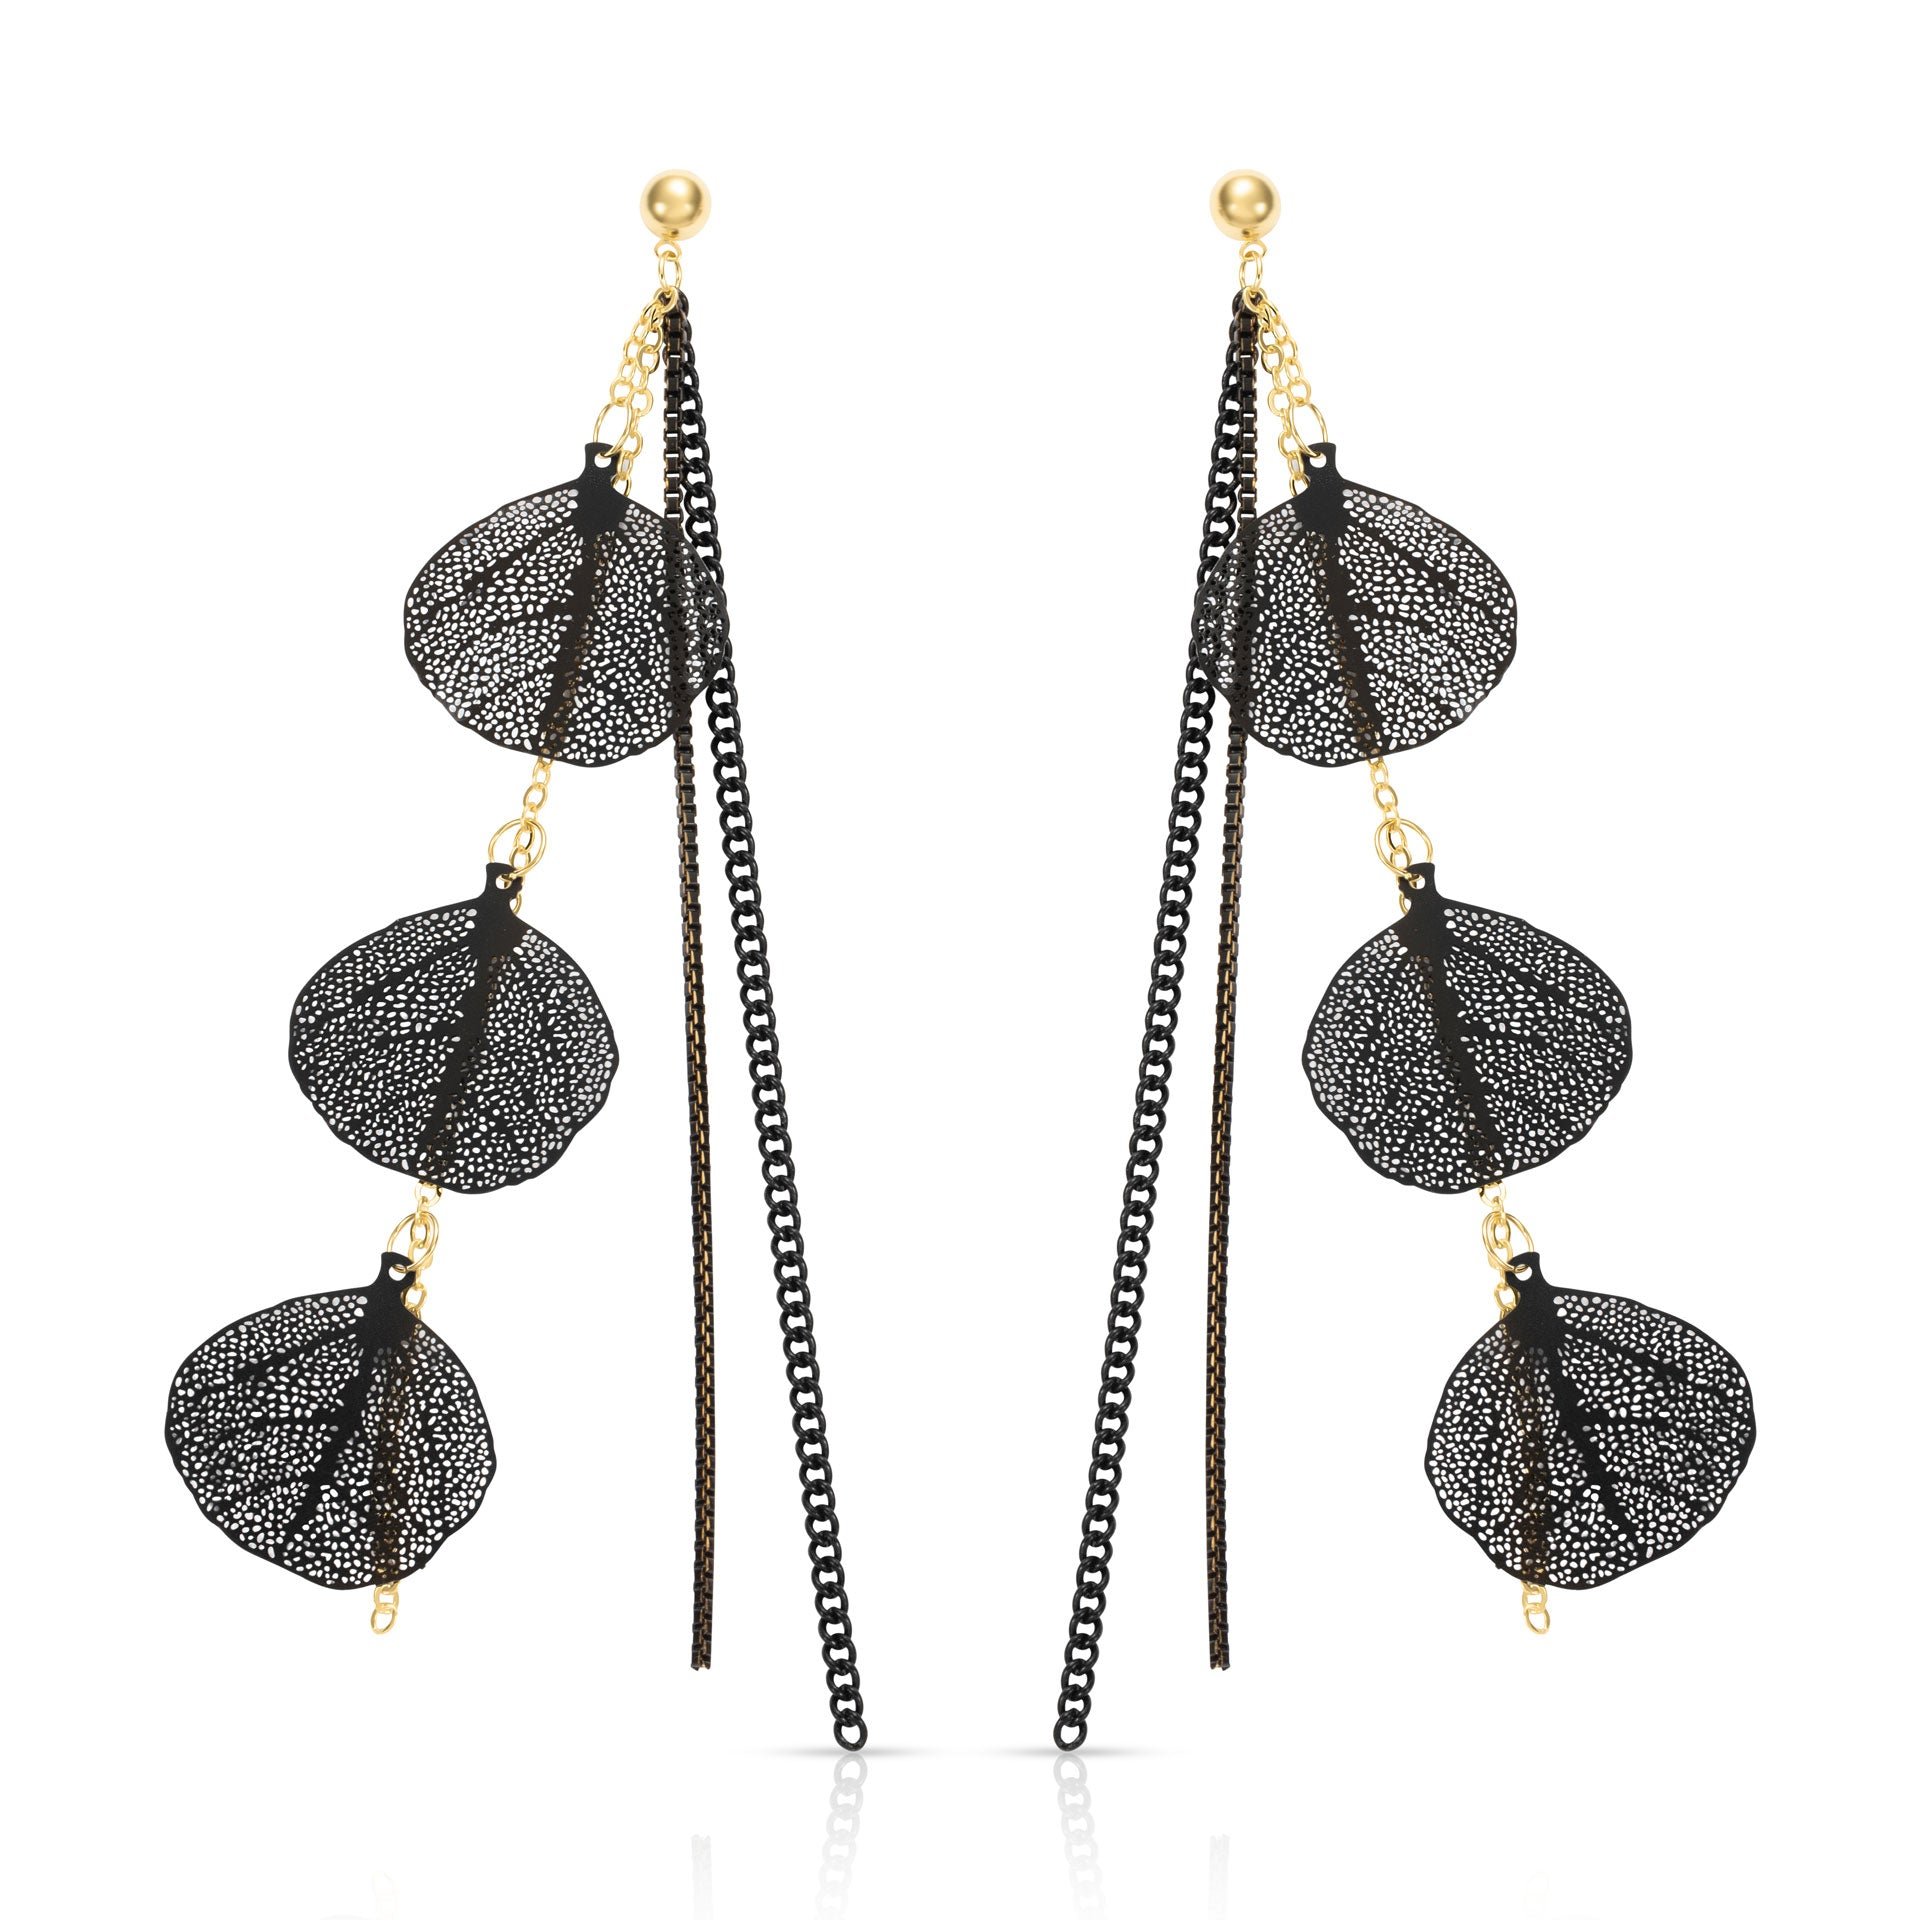 THE PATRICIA EARRINGS